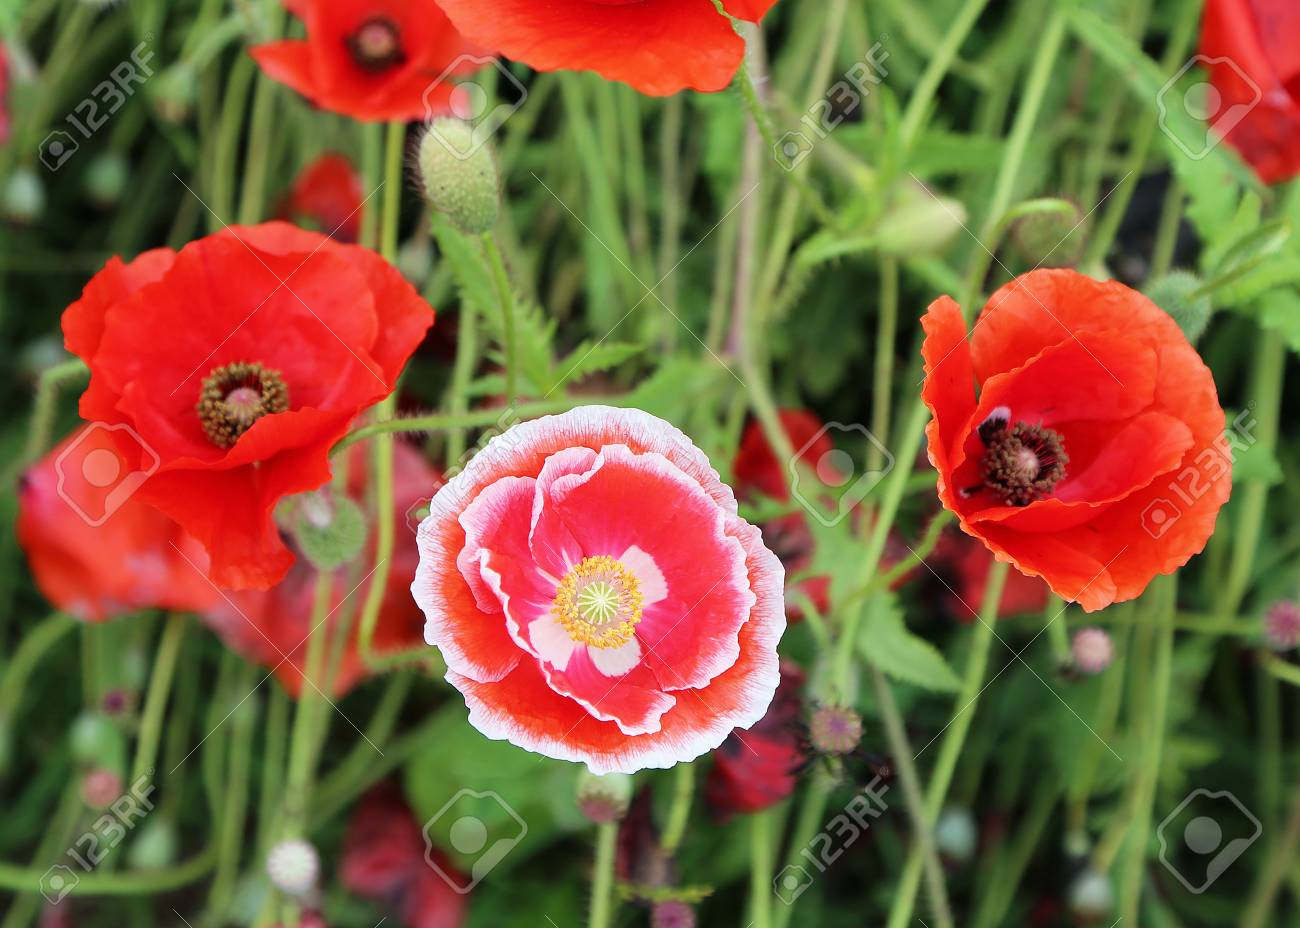 Red White Poppy Flowers Stock Photo Picture And Royalty Free Image